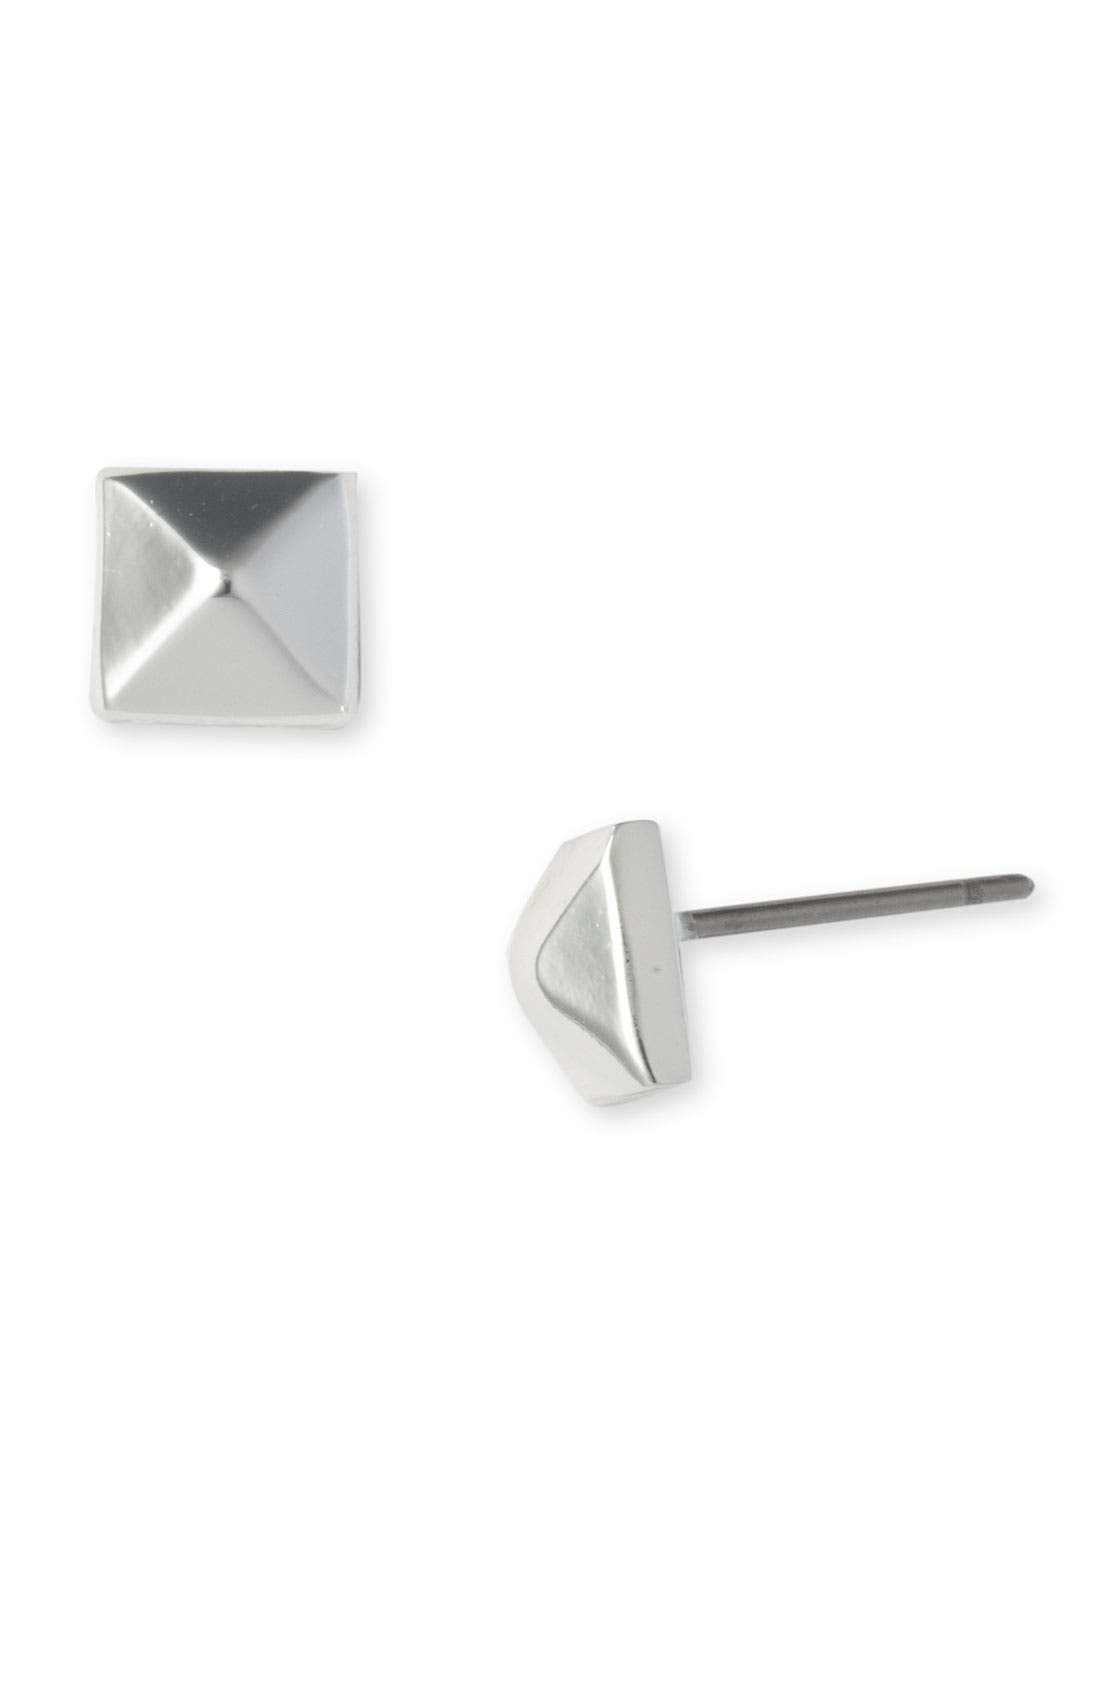 Main Image - Nordstrom Small Pyramid Stud Earrings